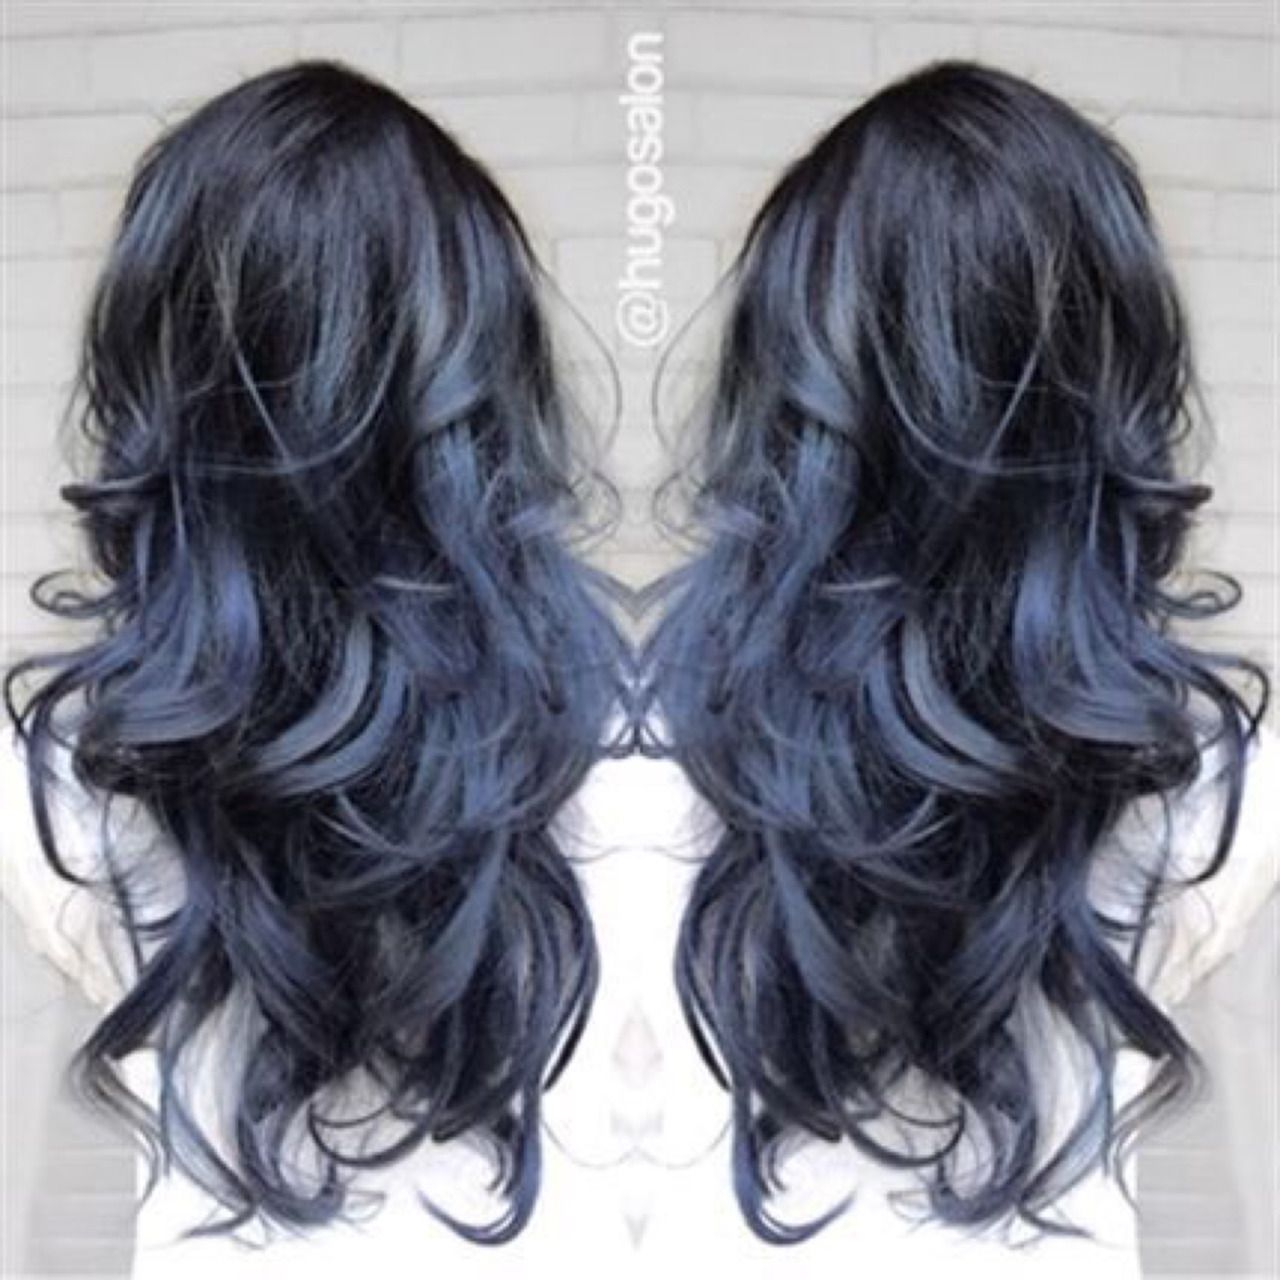 Pin by Kendra Walksinthewind on Hair 2 | Pinterest | Hair coloring ...